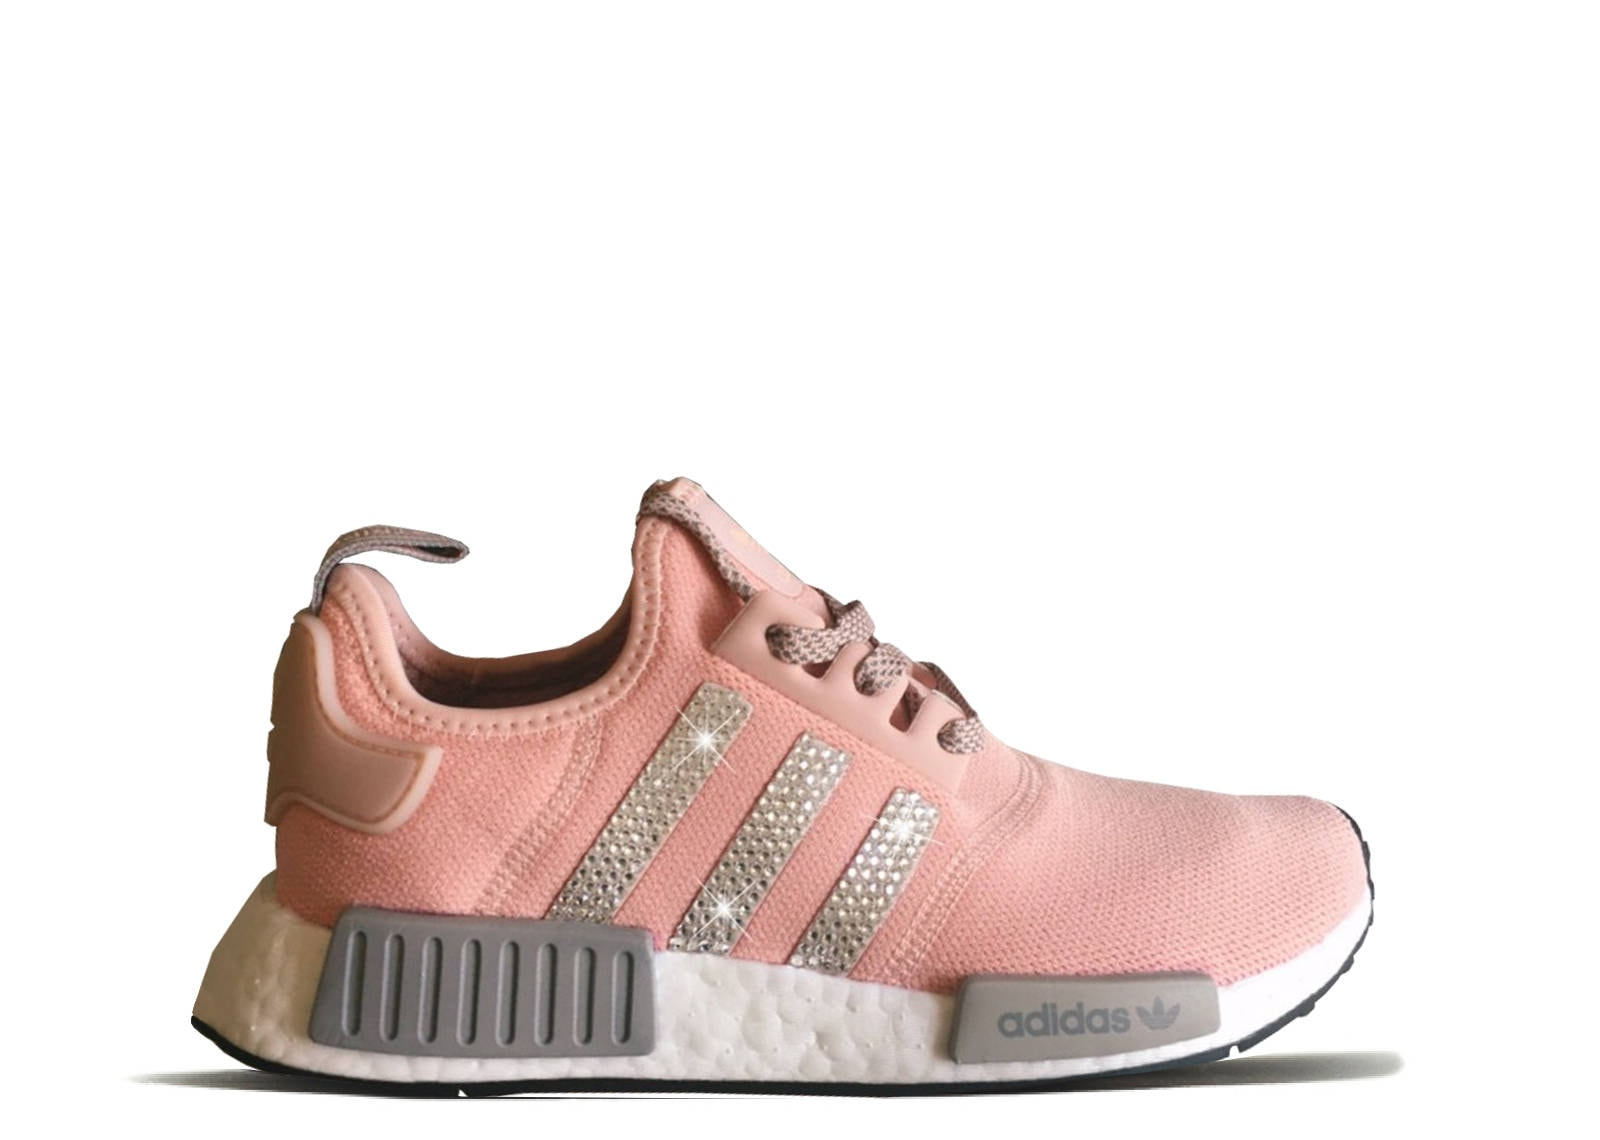 5d0f7a031 Women s Pink Adidas NMD R1 with Silver Swarovski Crystals